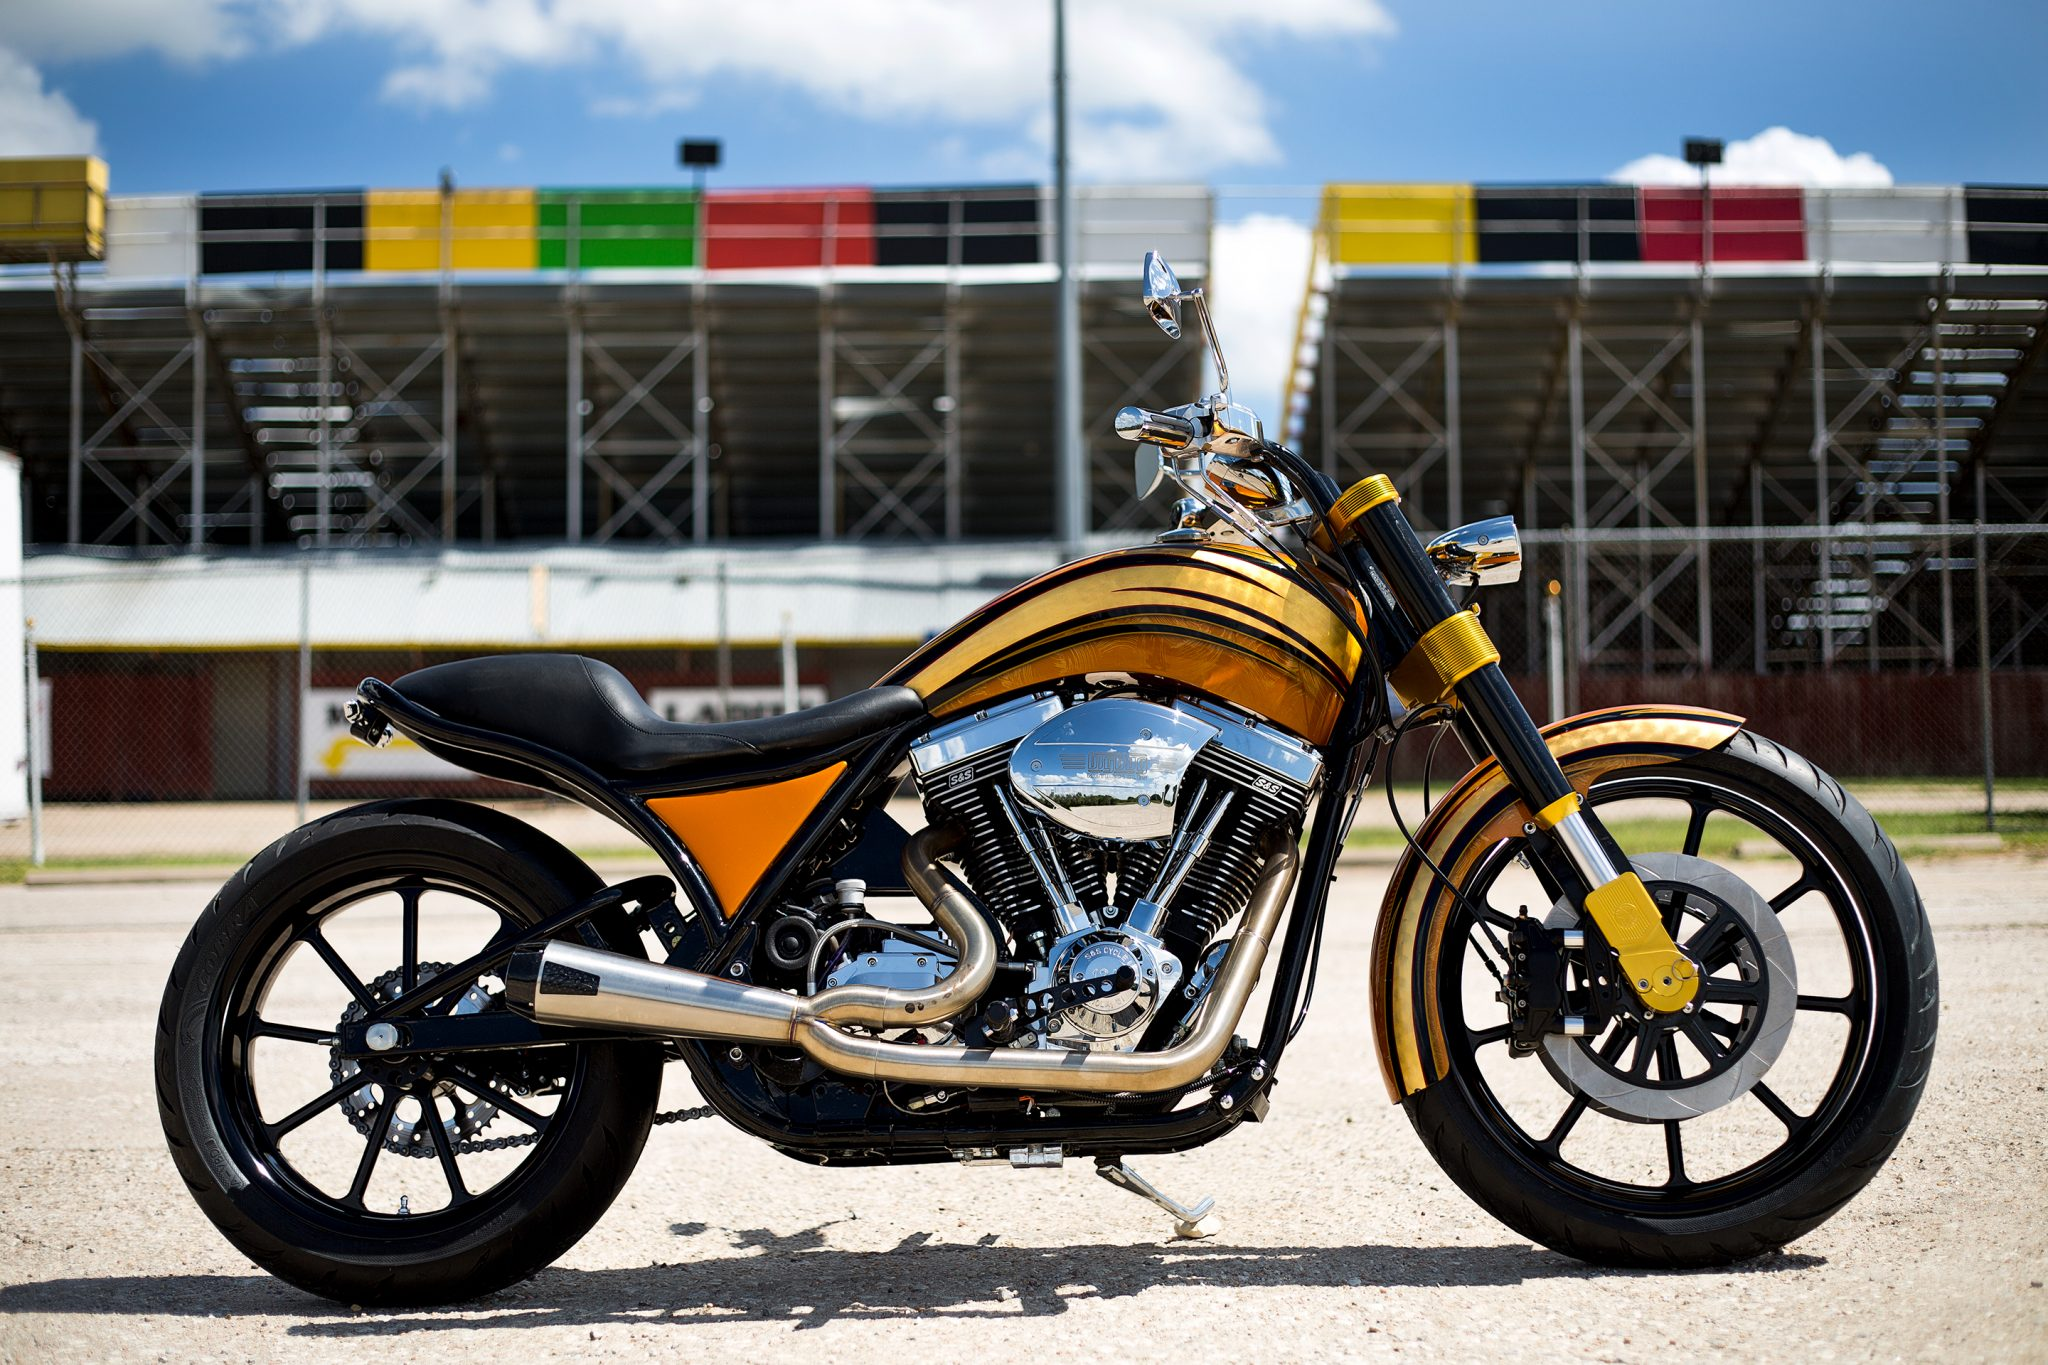 boxer dog motorcycle motorcycles sr paul chopper american build teutul bankruptcy choppers revival days before dealer wichita ks gallery2